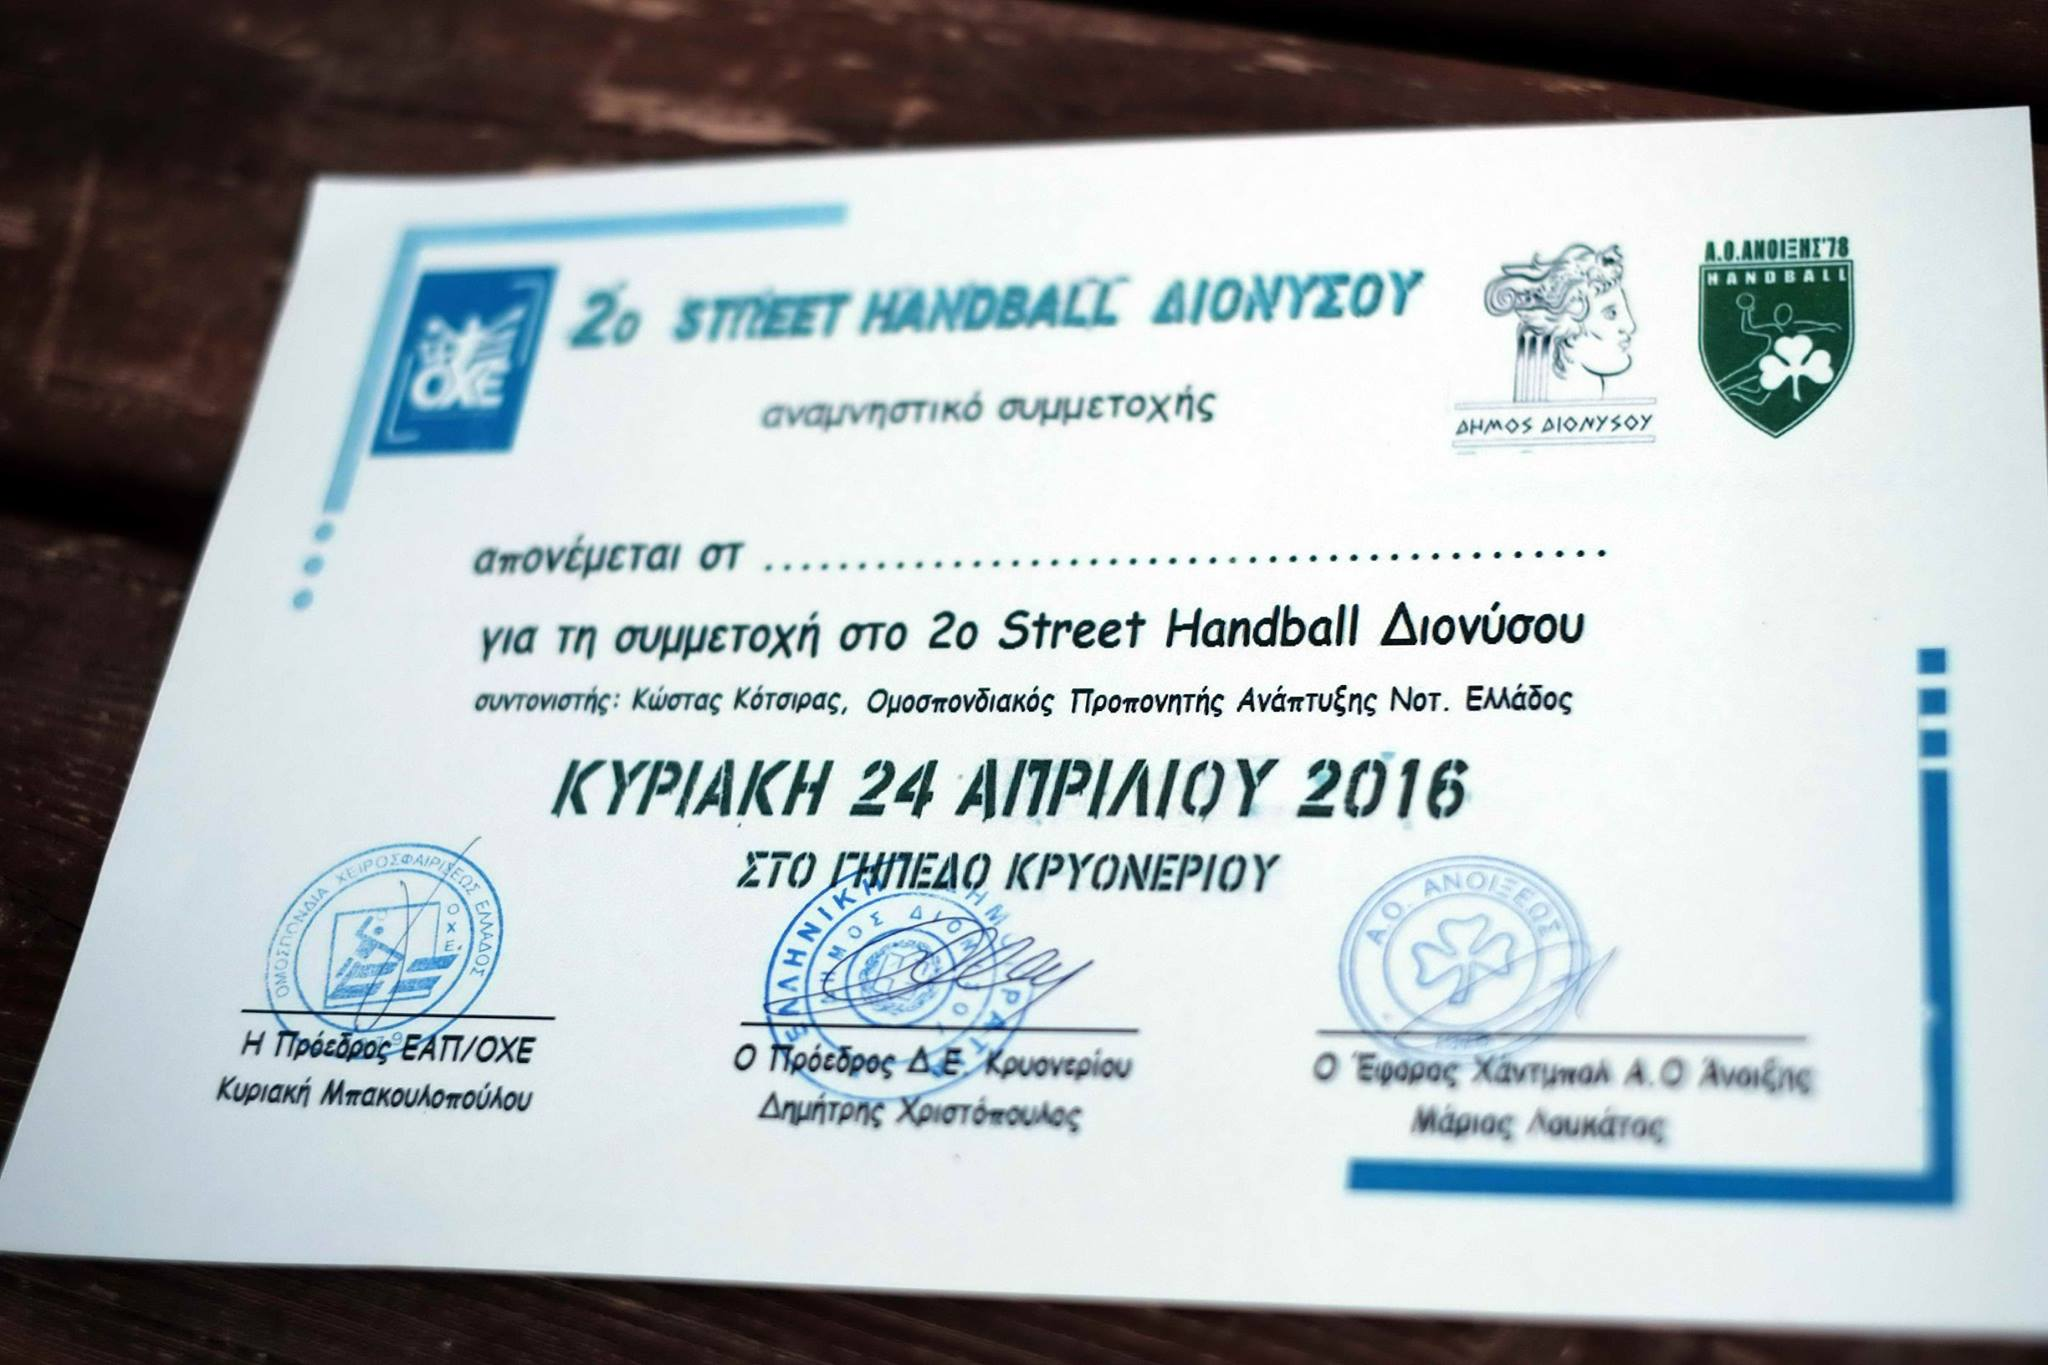 341 Greece 2nd Street Handball Διονύσου in Kryoneri6